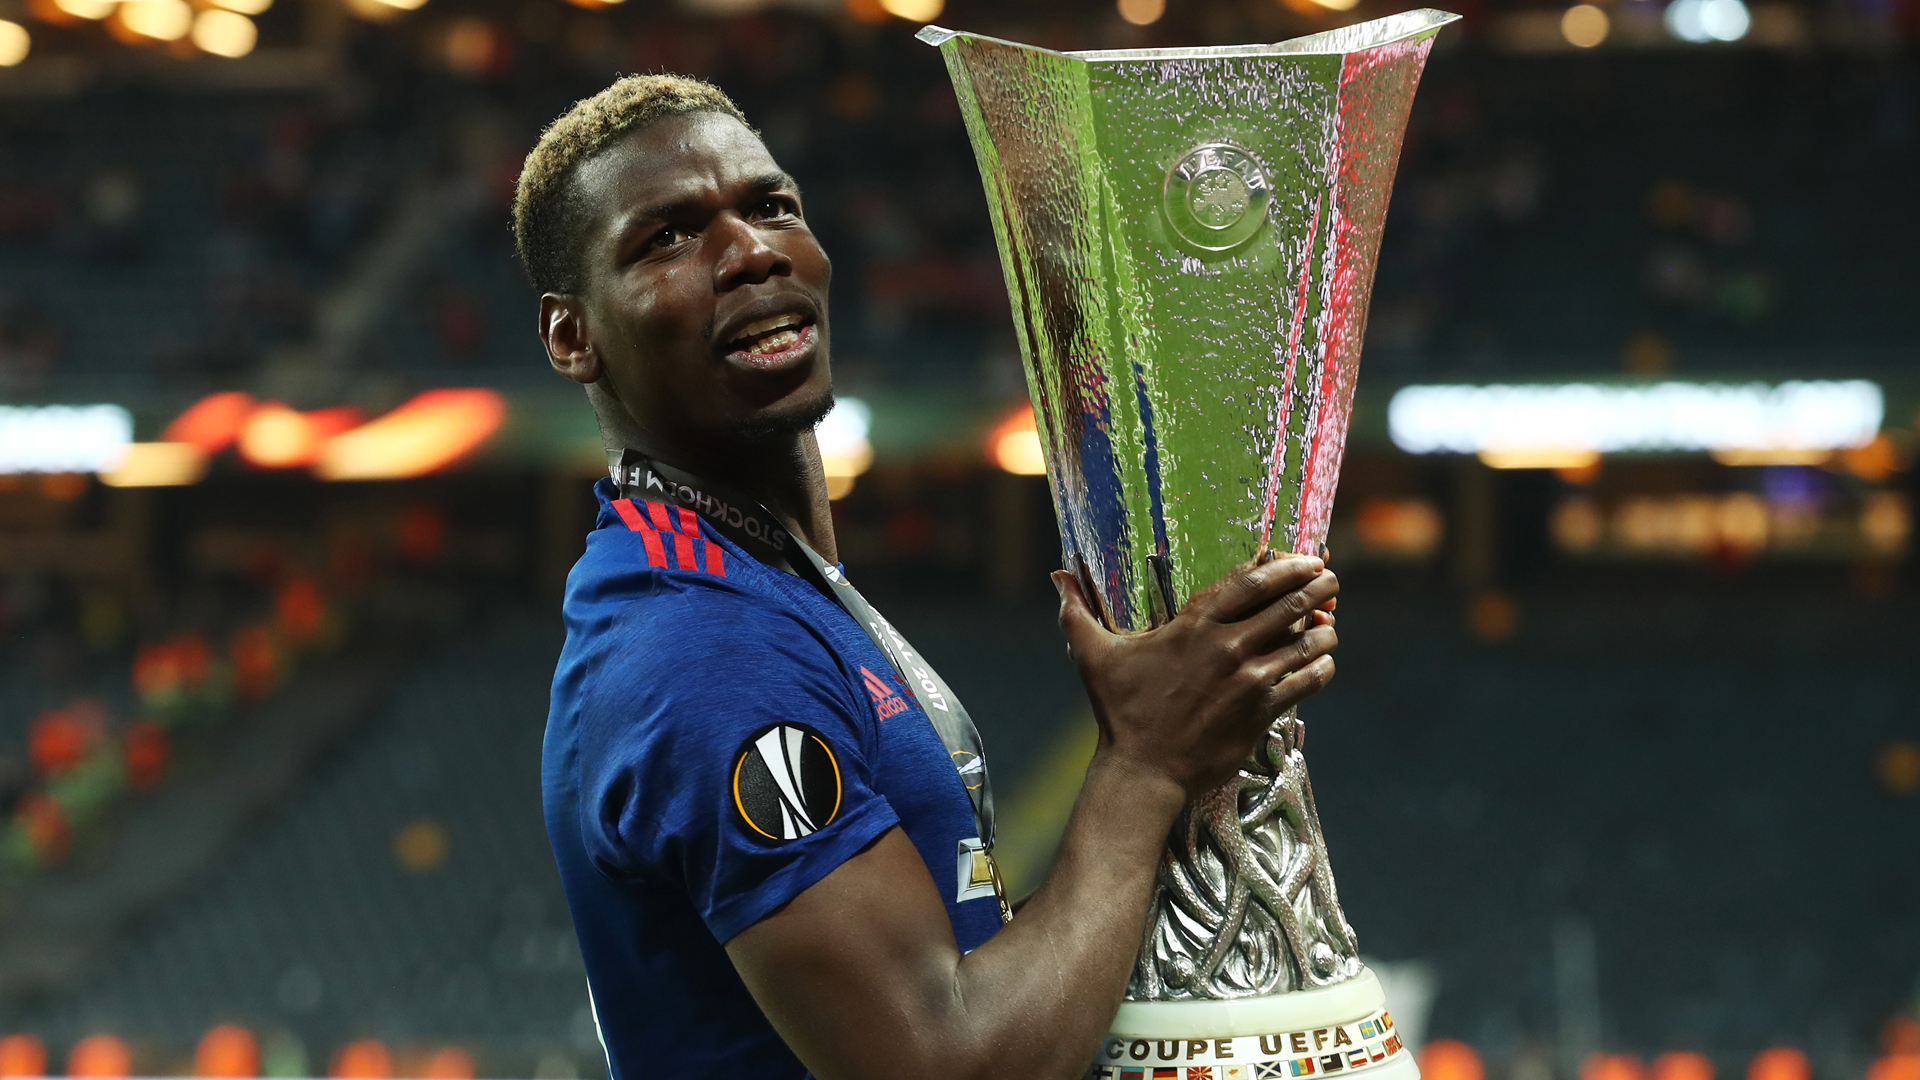 We played for the people who died, says Pogba